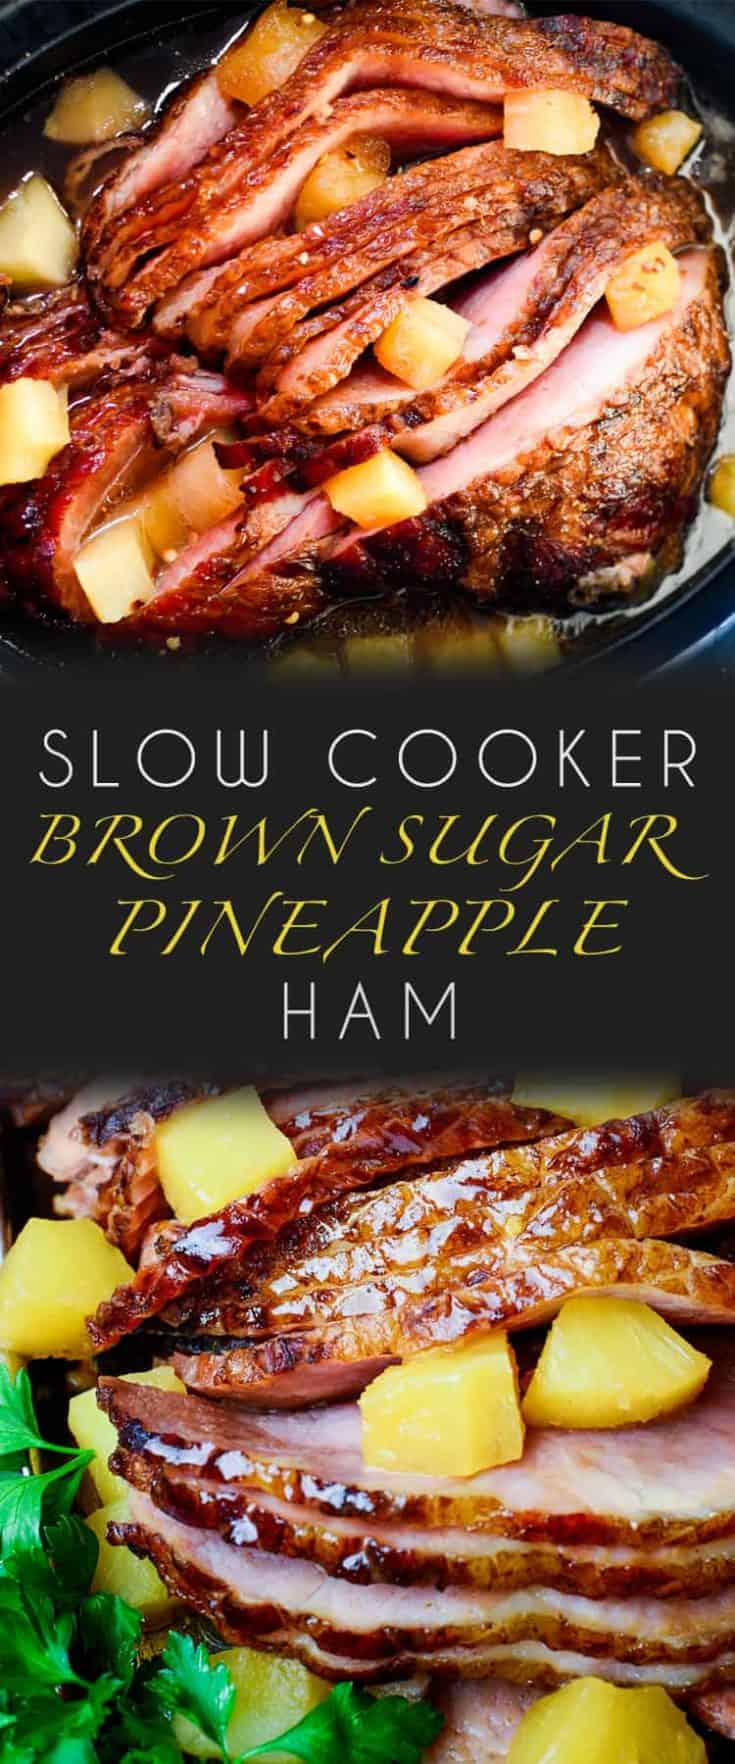 Slow Cooker Ham is a classic and iconic meal, yet there's so many variations on this recipe. Here is my go-to for the best Slow Cooker Brown Sugar Pineapple Ham ever, easy to make with just 5 ingredients - and so delicious! #ham #slowcooker